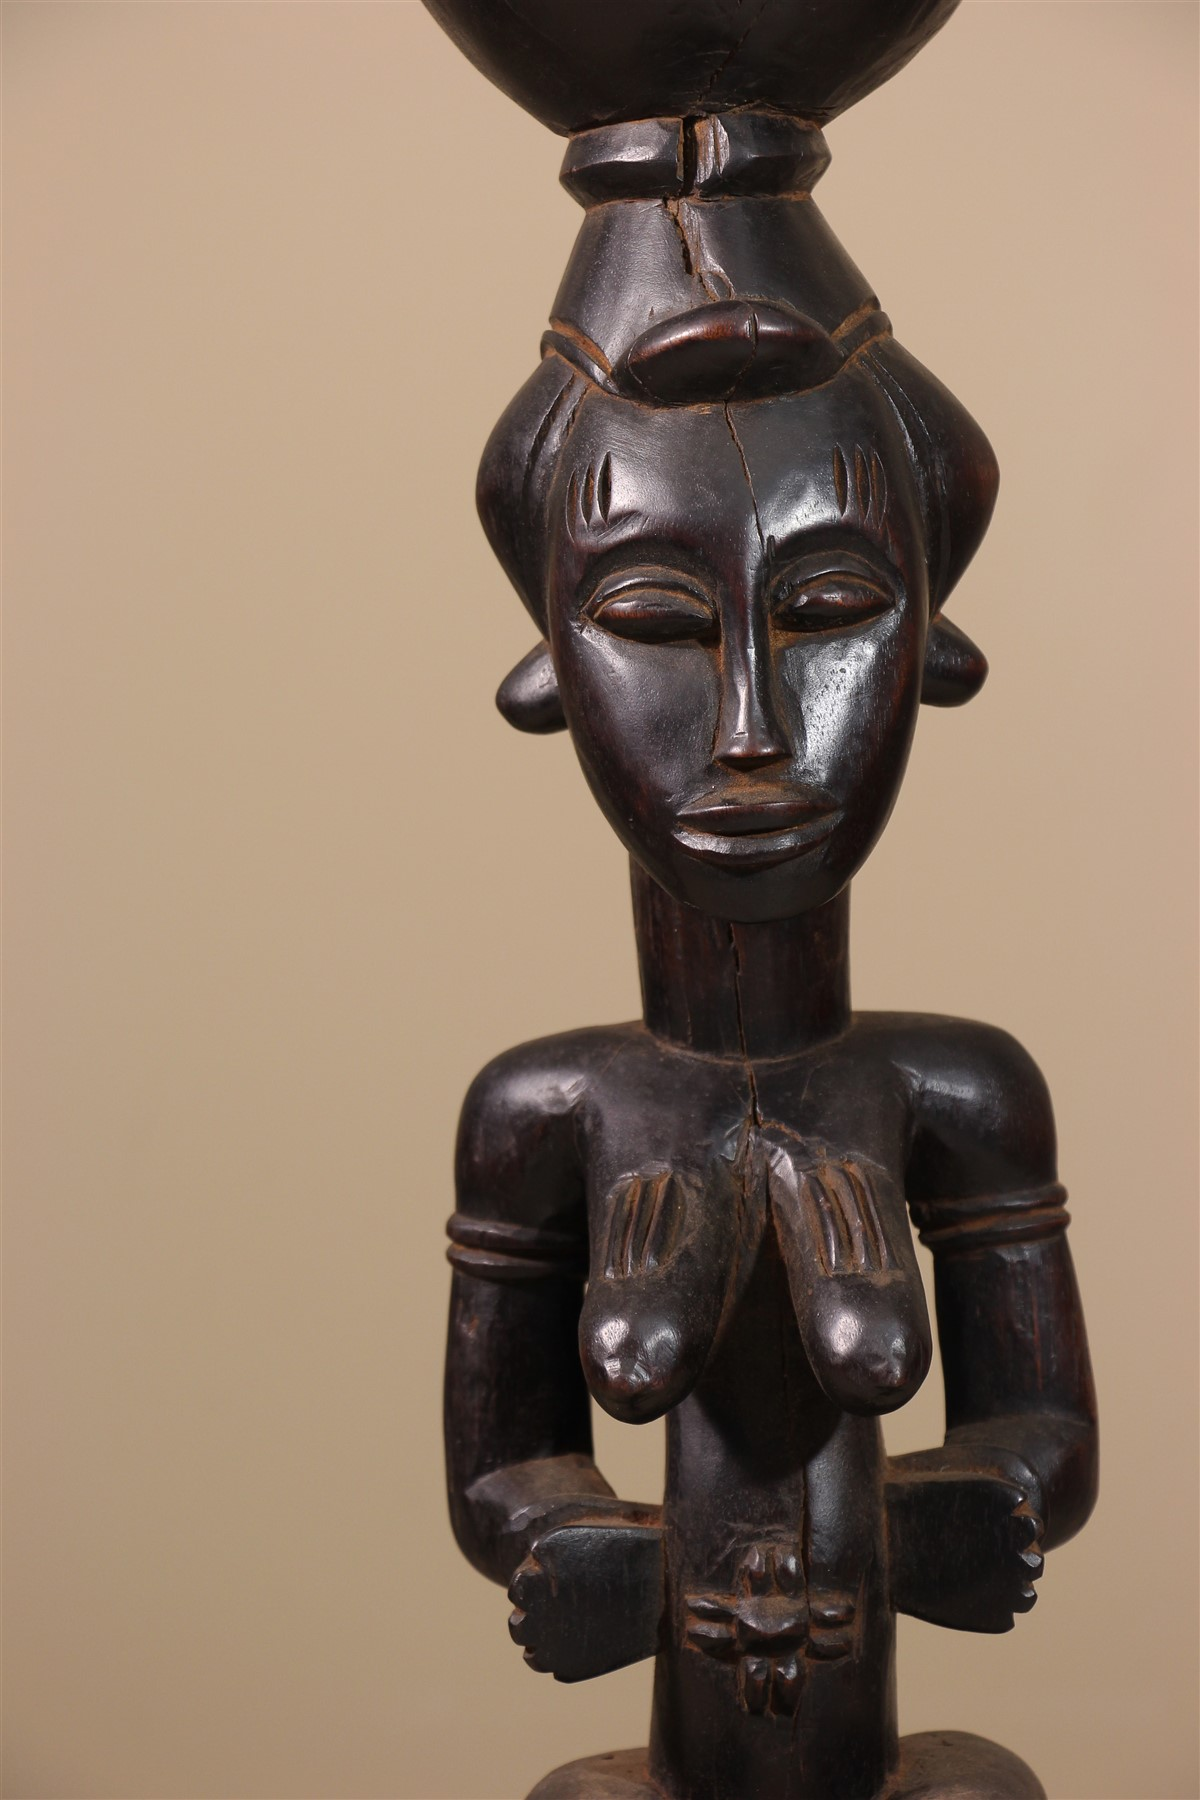 Statue africaine Senoufo cariatide - Déco africaine - Art africain traditionnel